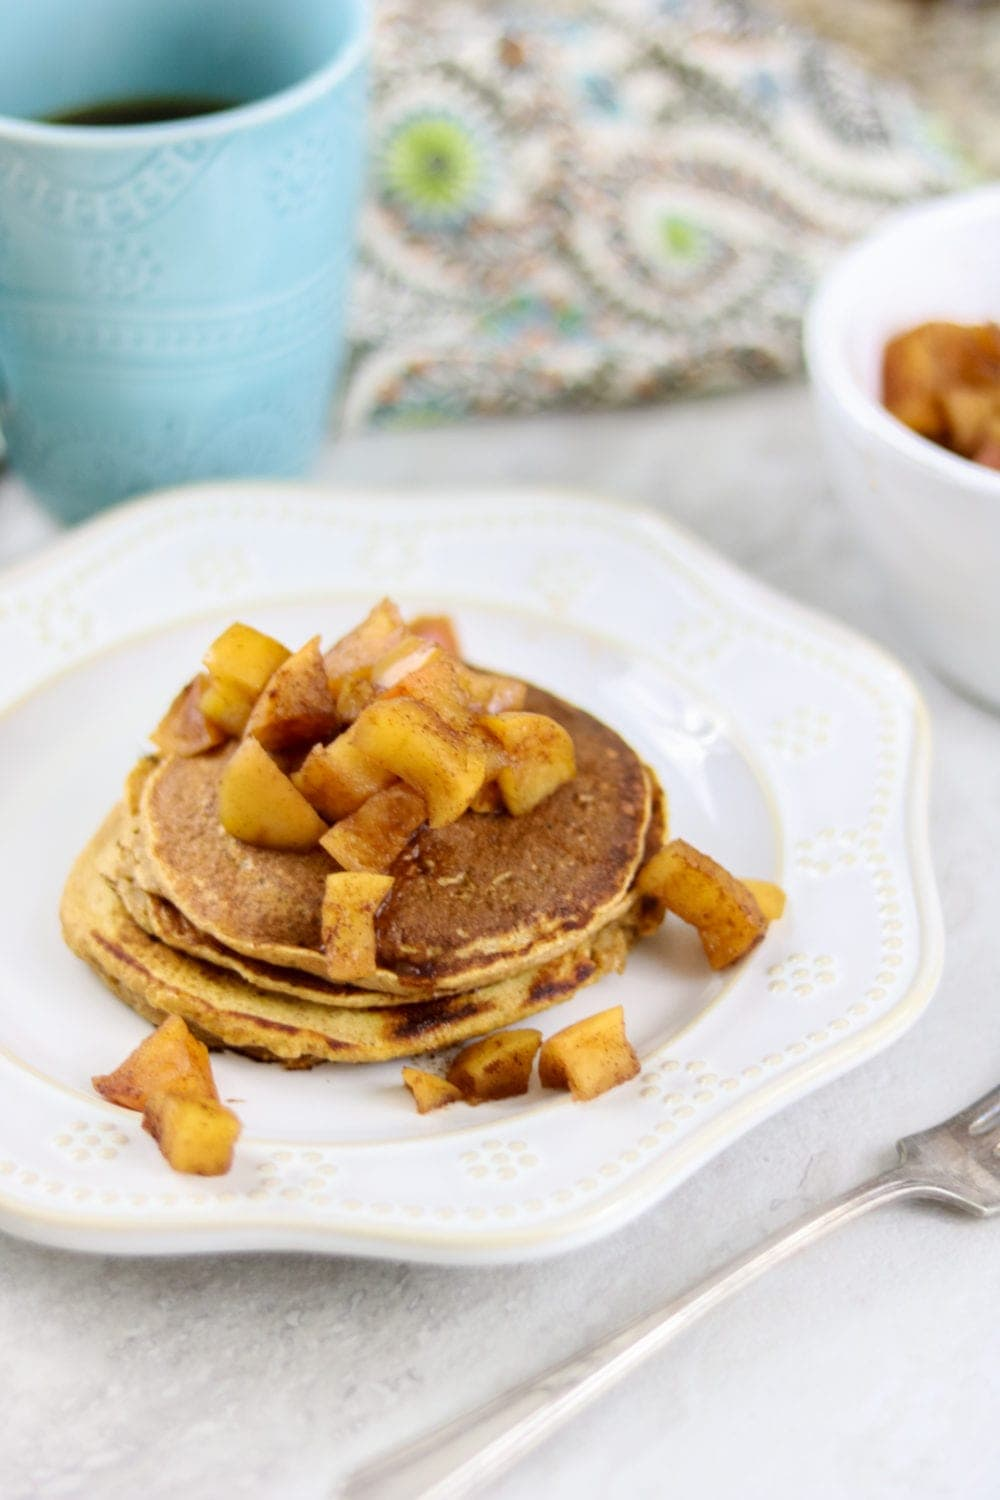 Sweet Potato Pancakes topped with spiced apples on white plate